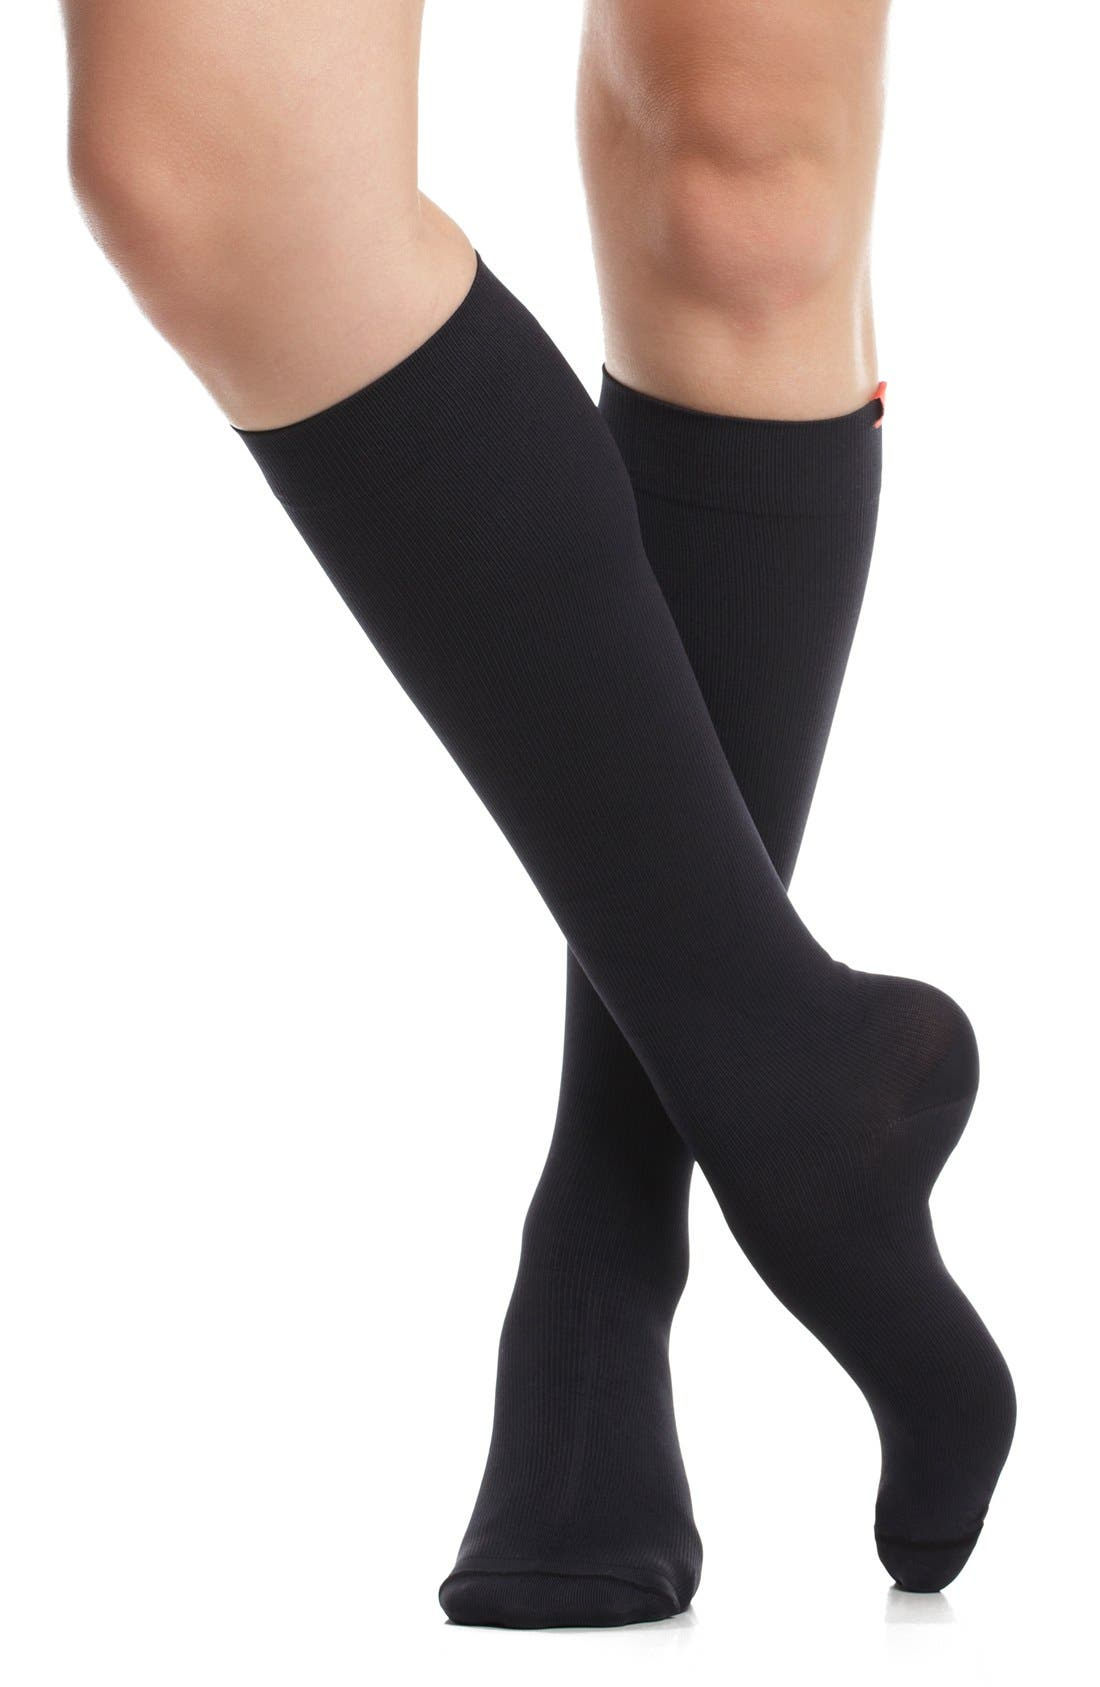 Solid Graduated Compression Trouser Socks,                             Alternate thumbnail 2, color,                             Black